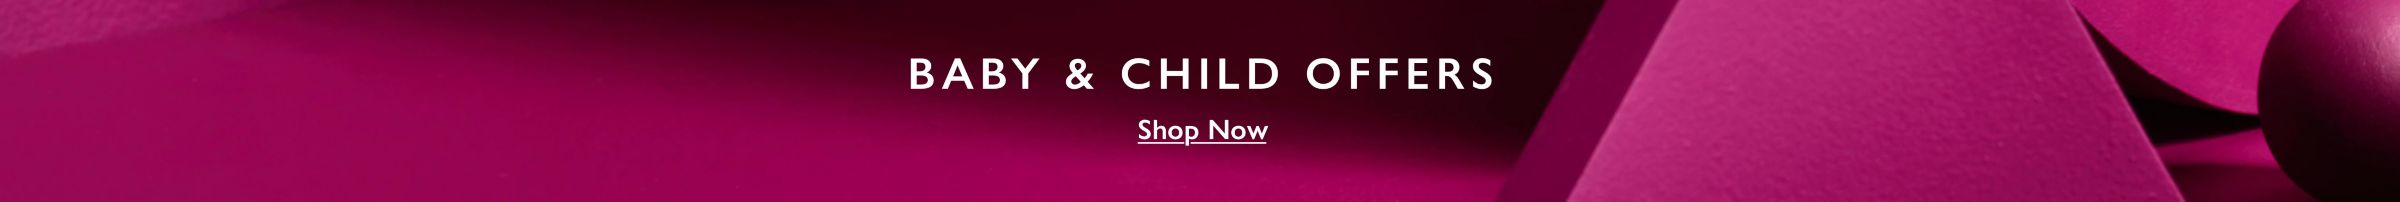 season offers baby and child